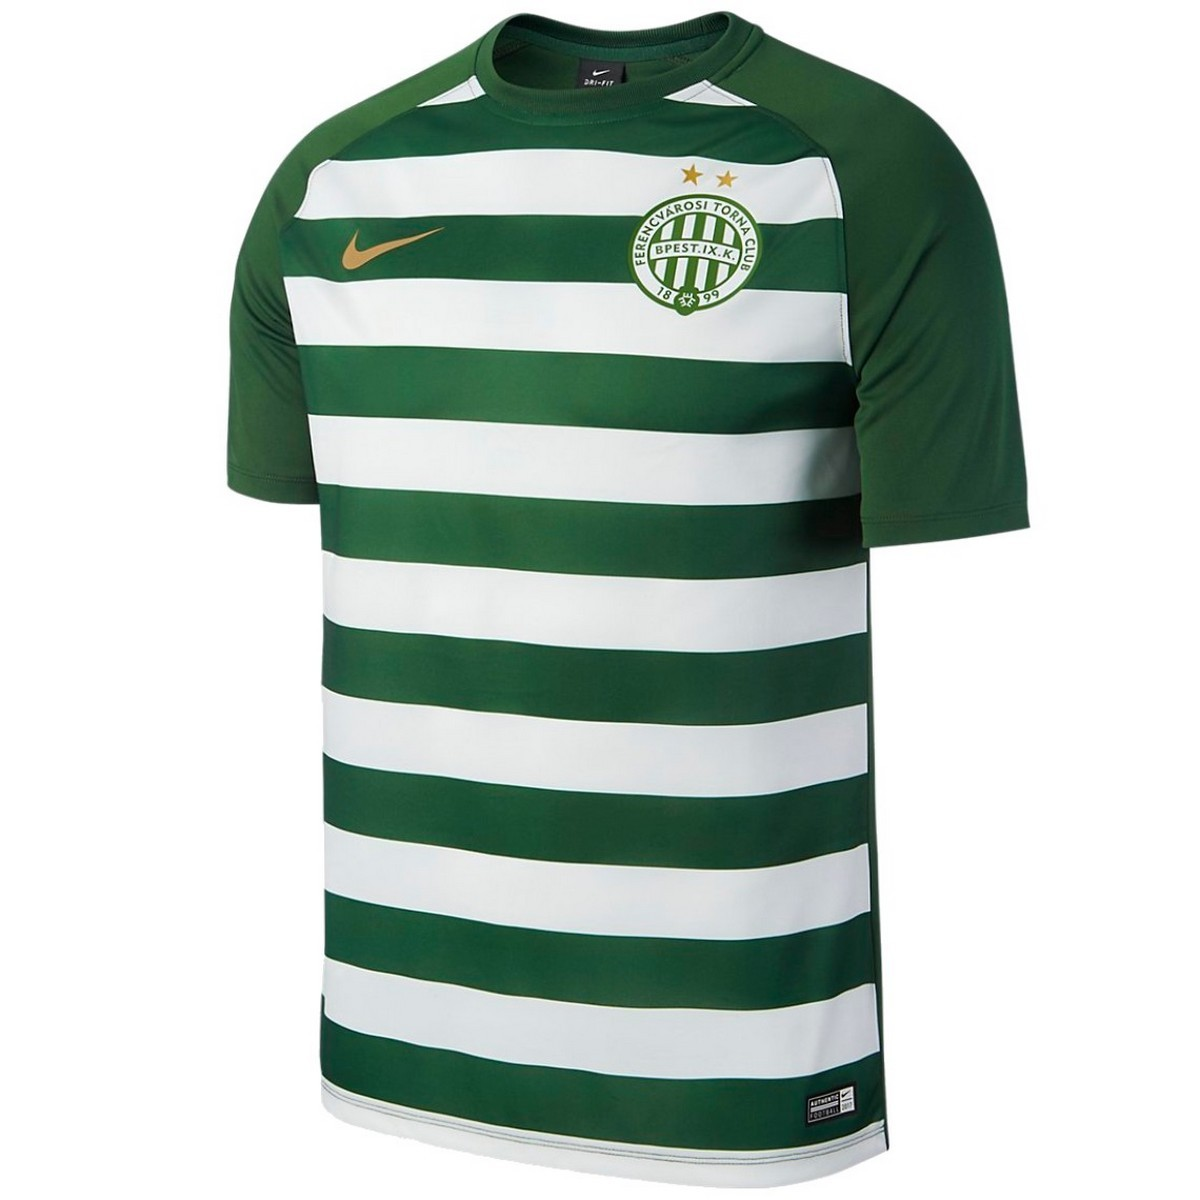 polilla En honor Bien educado  Ferencváros (Hungary) Home football shirt 2017/18 - Nike